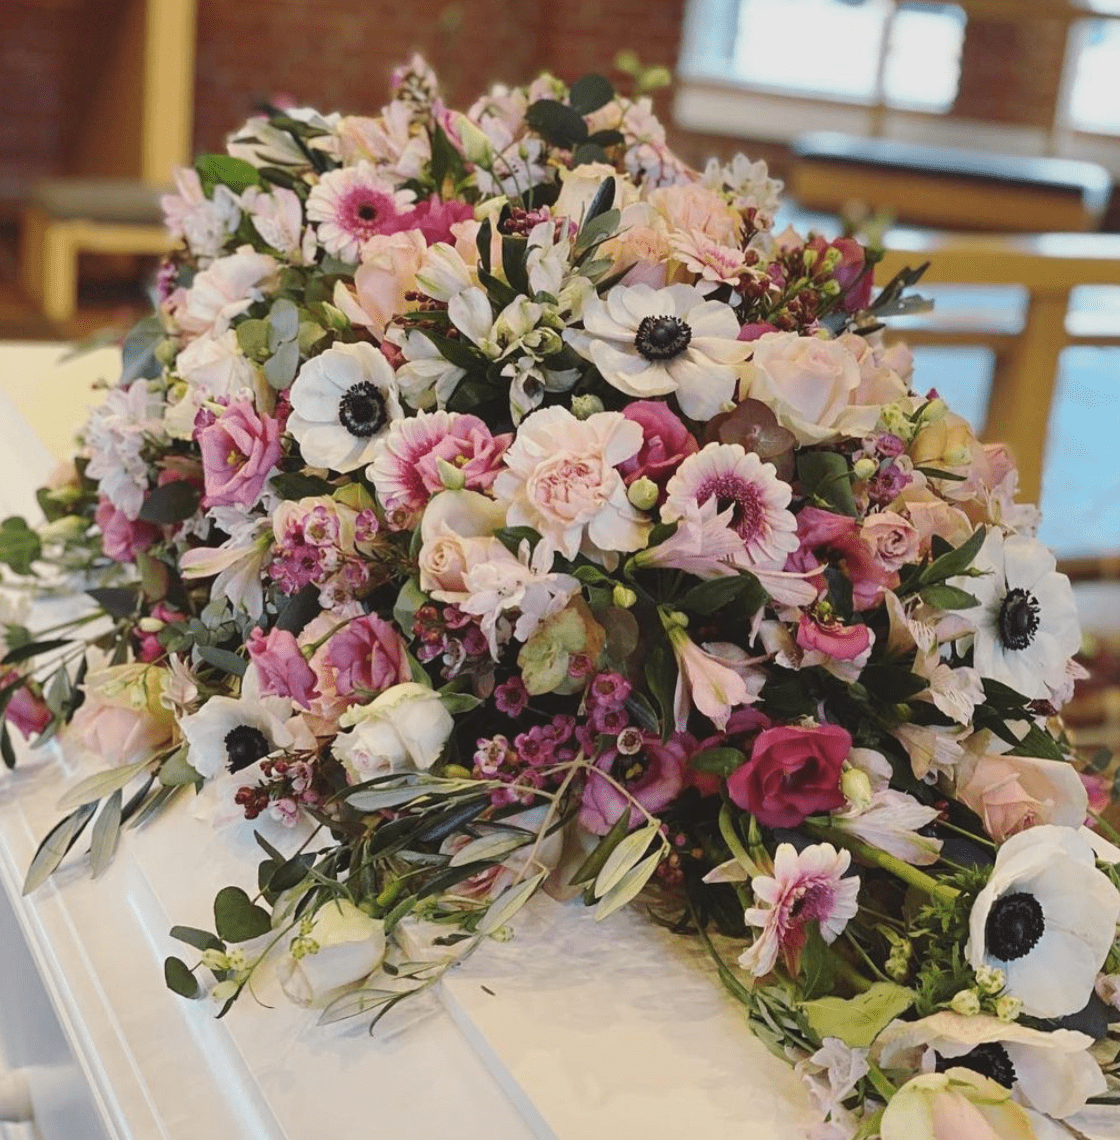 Photo By Christinas Blomster Funeral Casket Flowers in Dallas, Texas